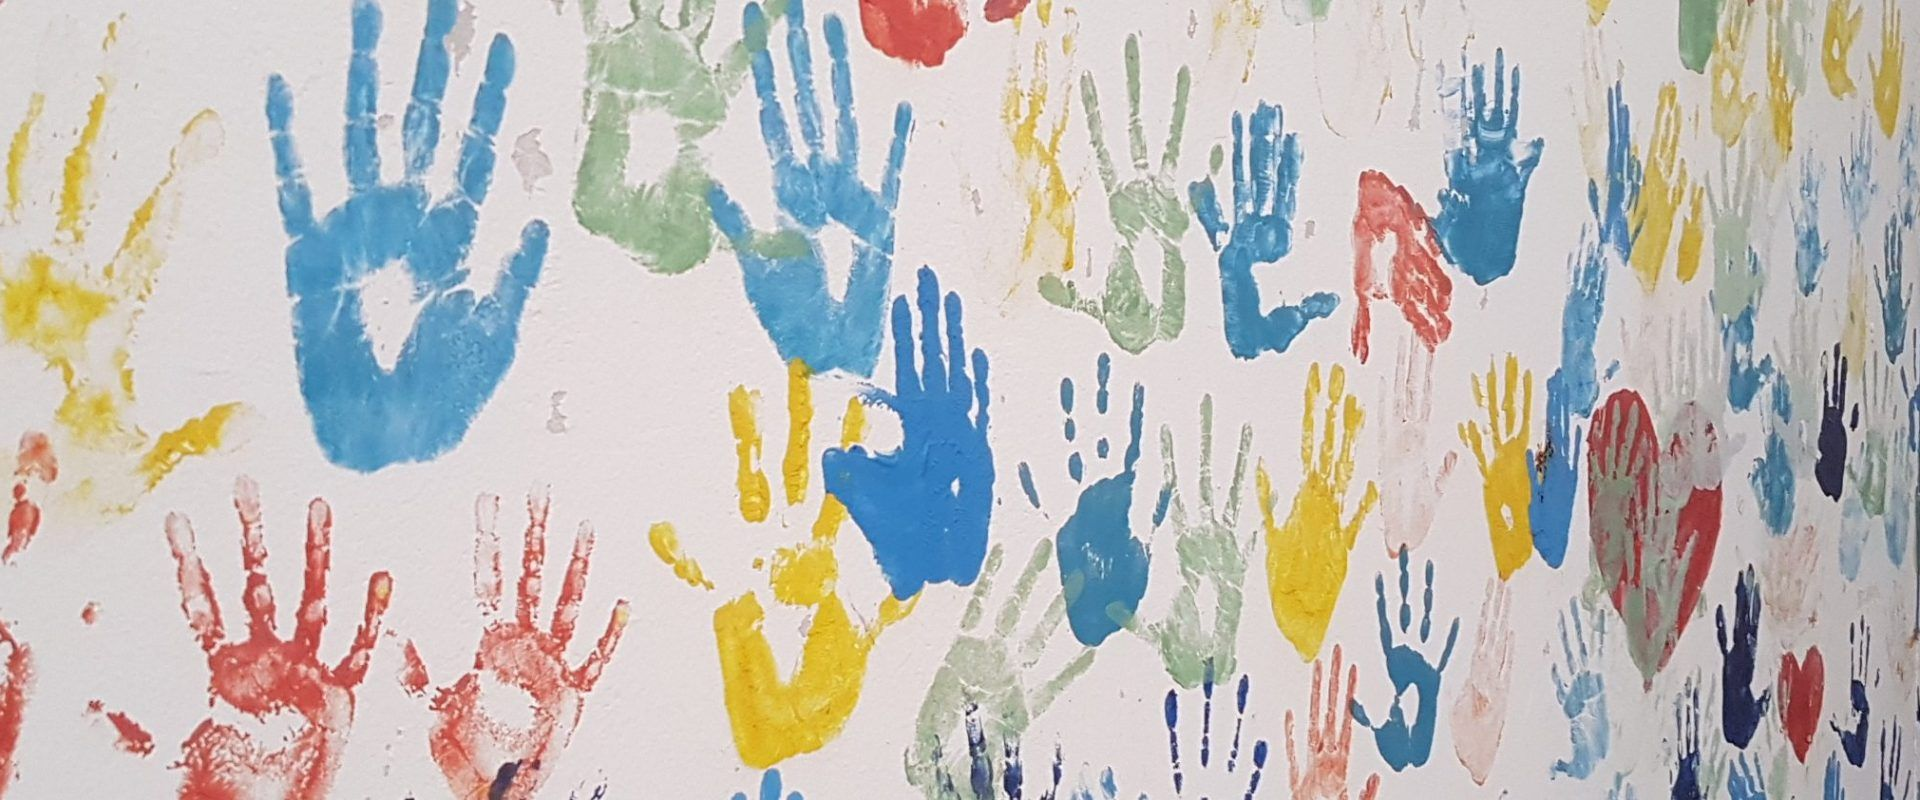 Multi-coloured handprints on a wall.